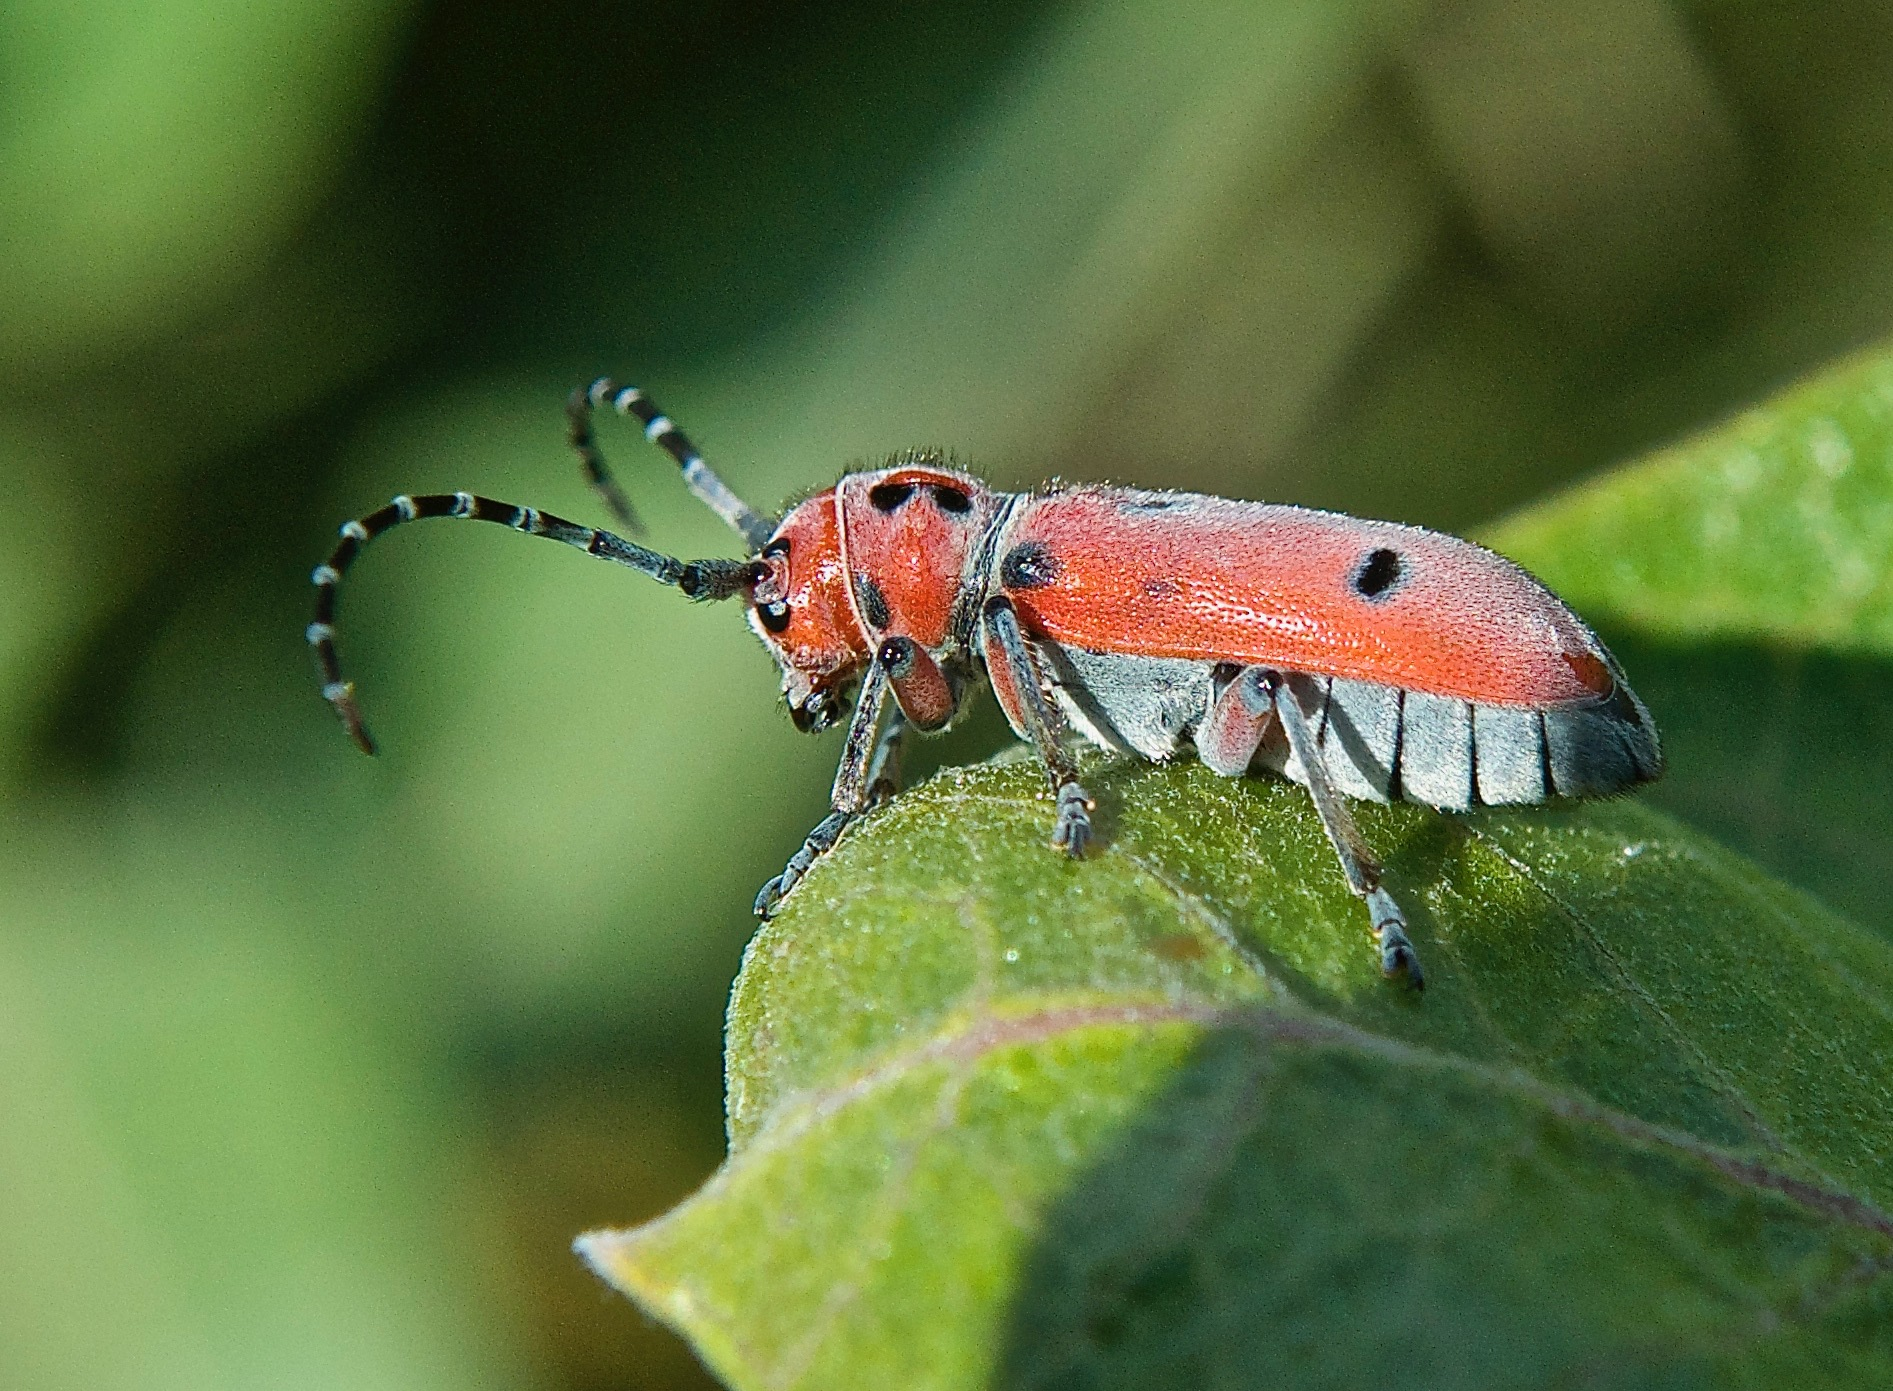 Red Milkweed Beetle (Tetraopes tetrophthalmus) on Showy Milkweed